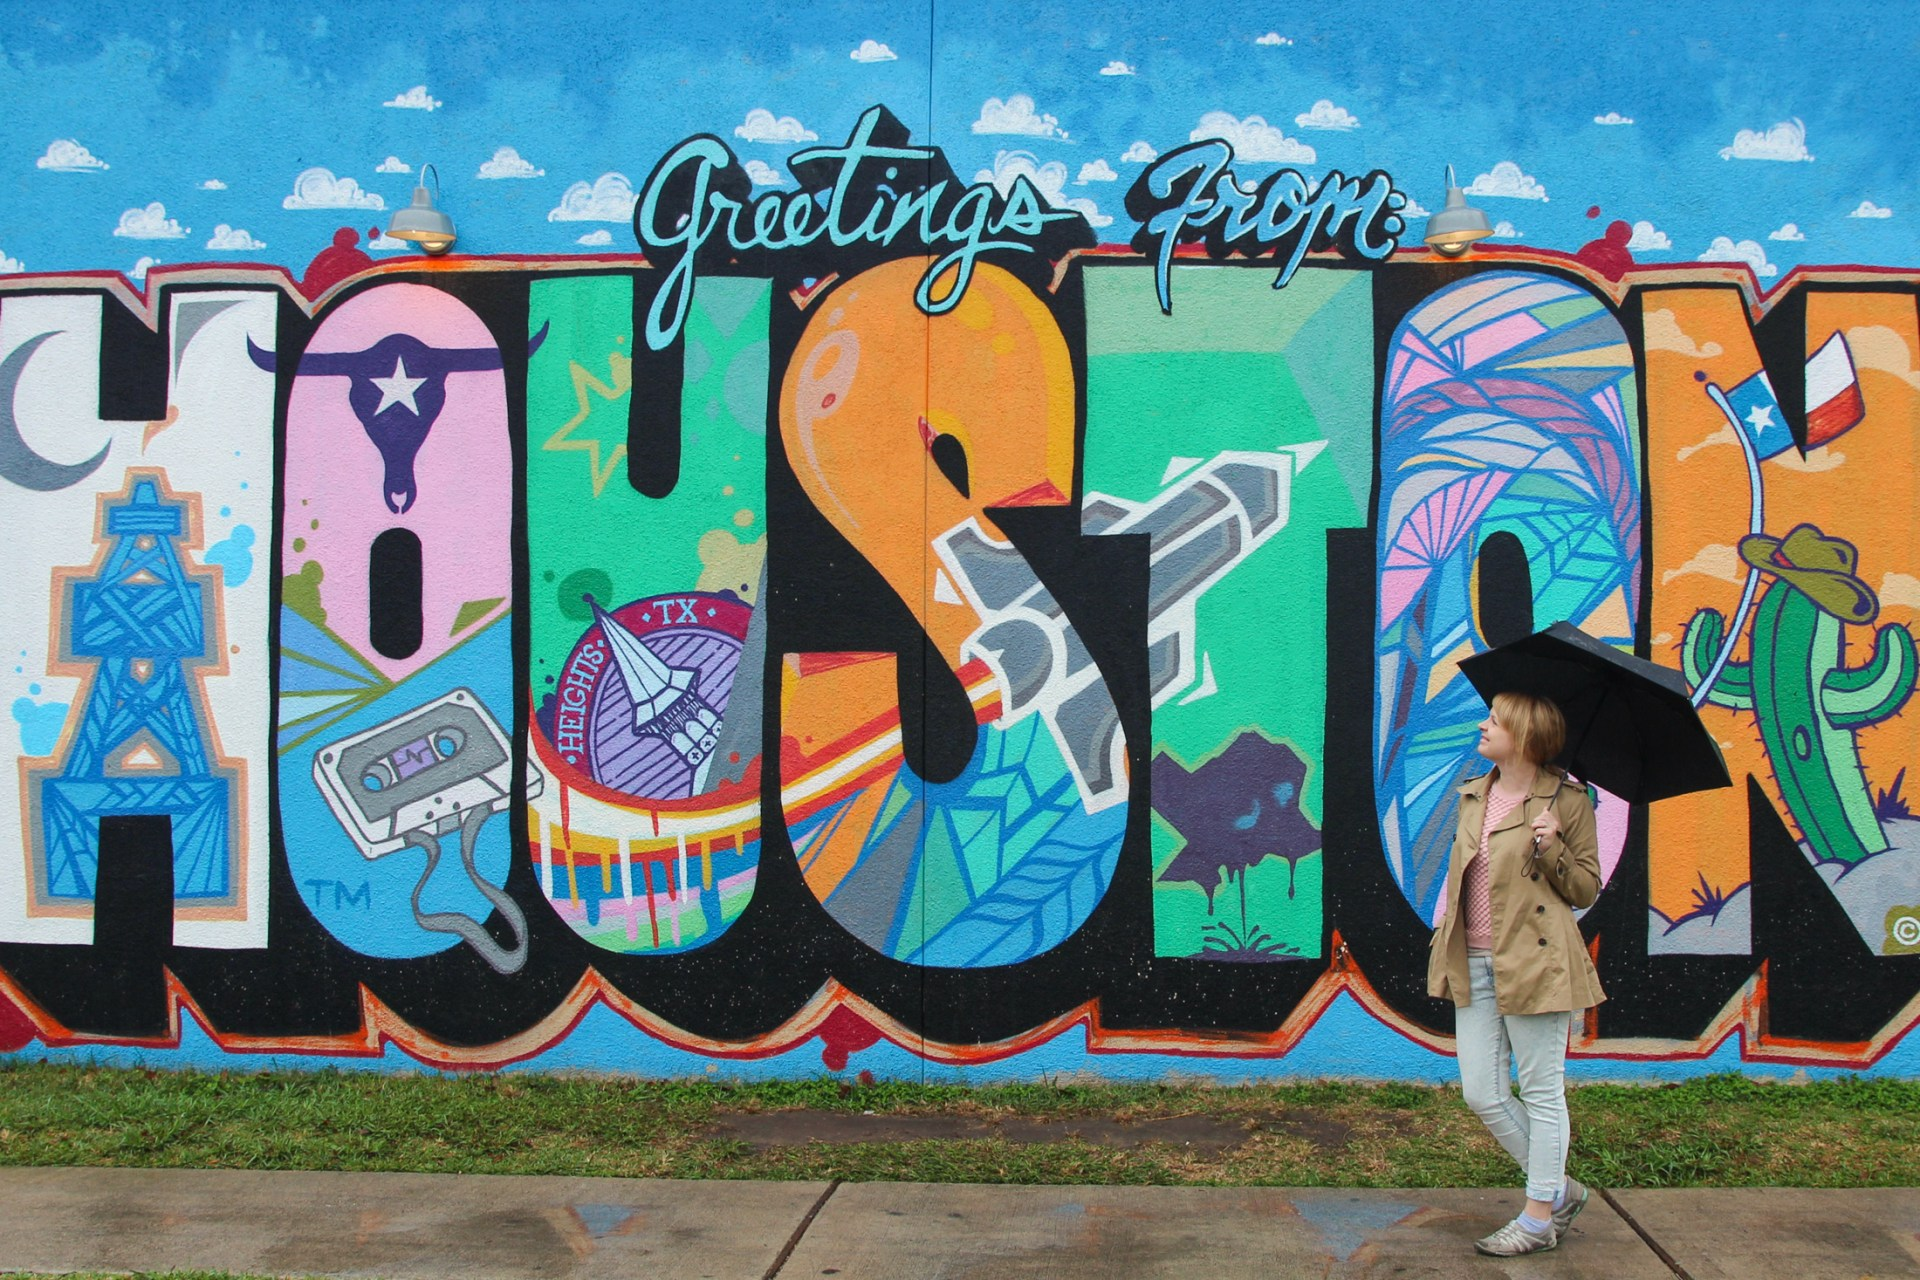 Greetings From Houston mural in Houston, Texas